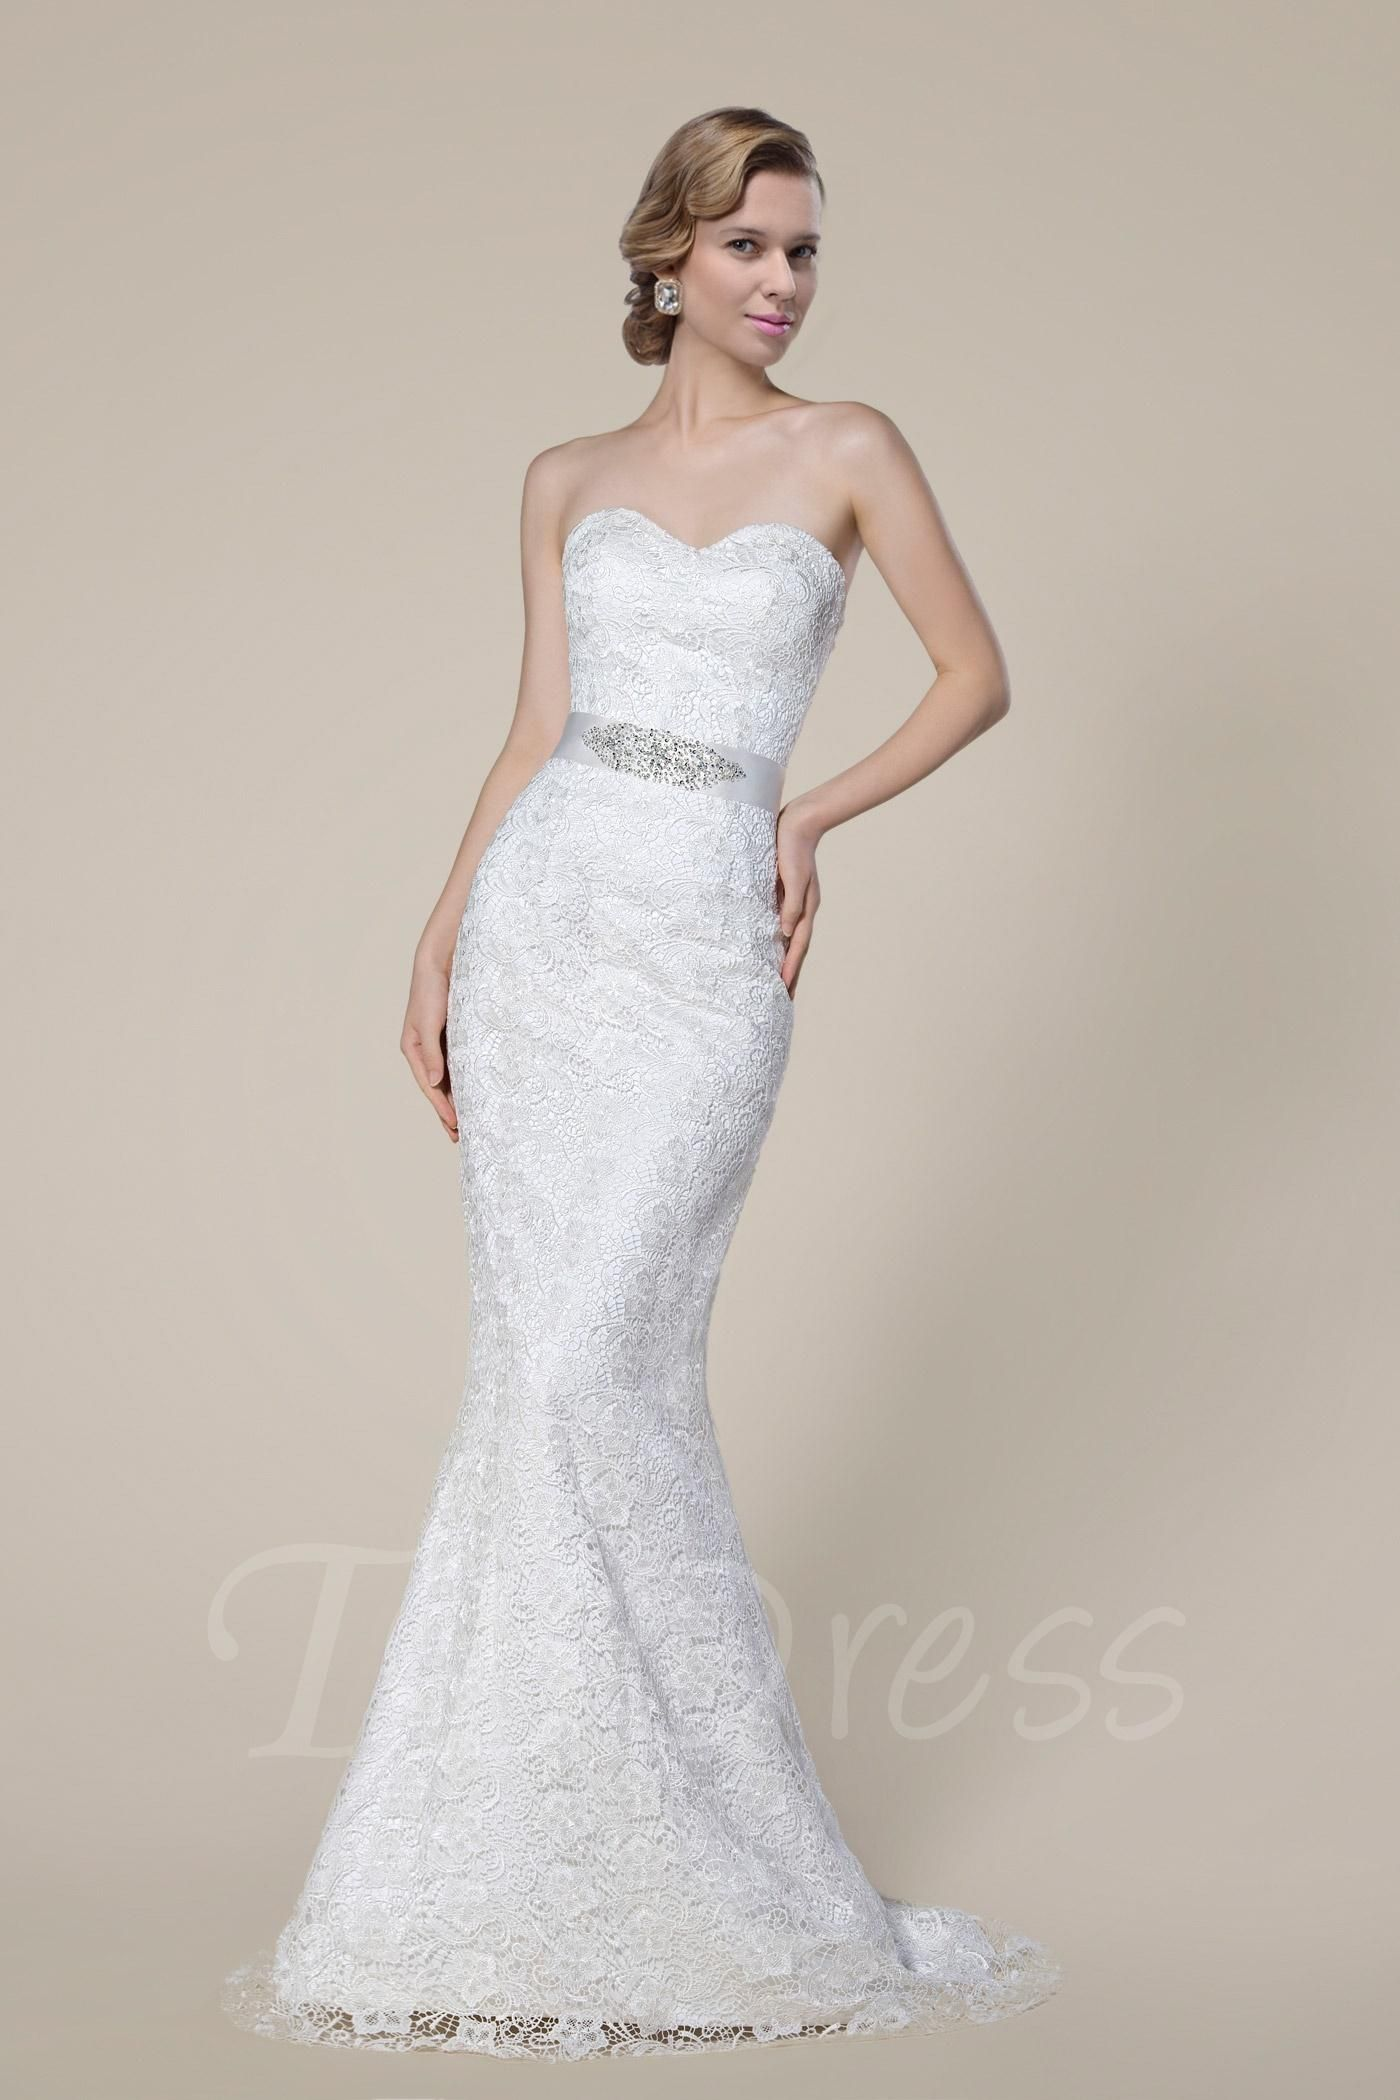 Tbdress tbdress strapless sweetheart zipperup lace floor length